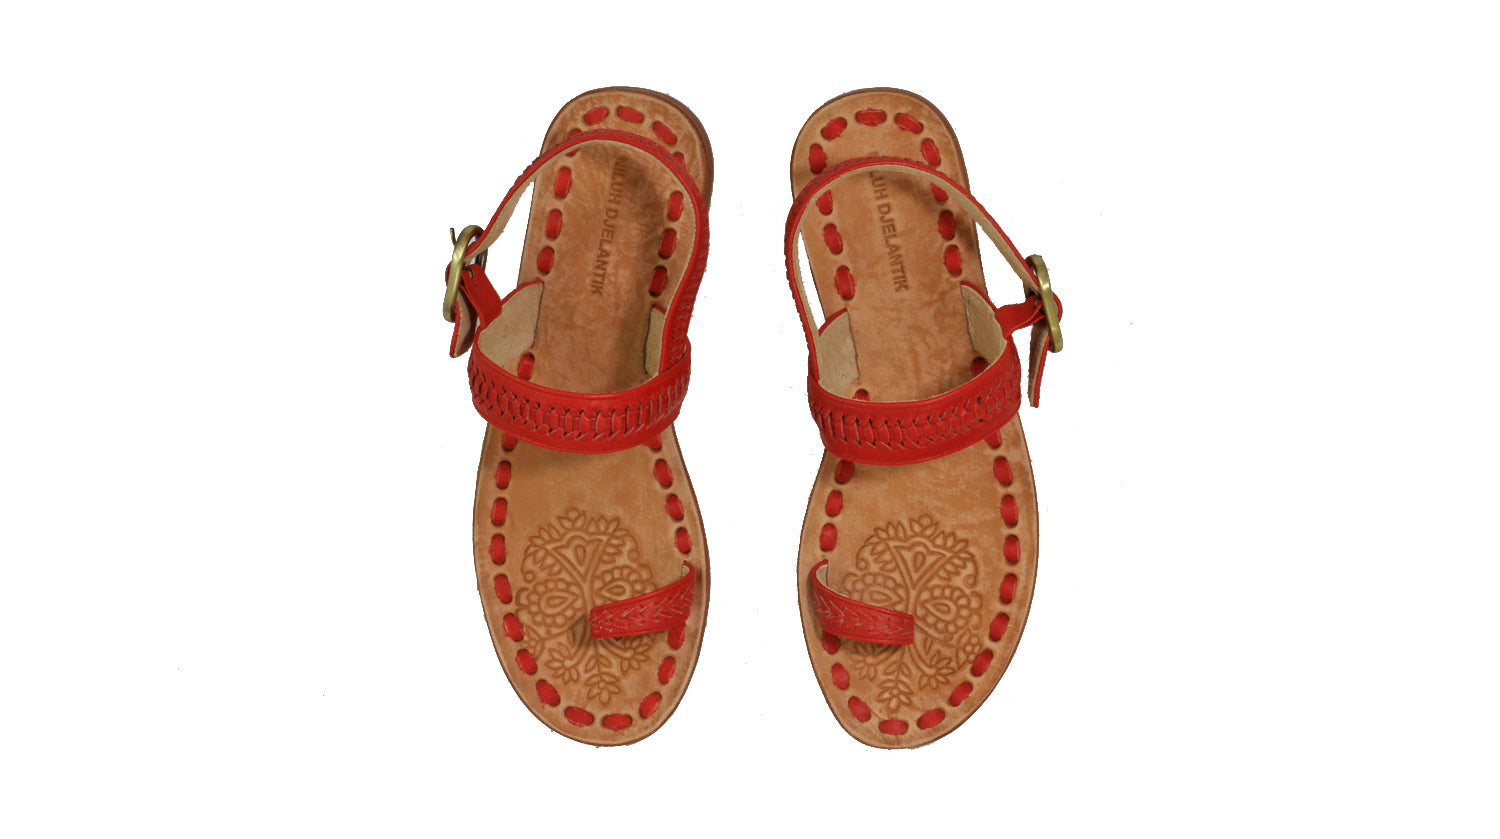 Leather-shoes-Sigi 20mm Flat - Red-sandals flat-NILUH DJELANTIK-NILUH DJELANTIK